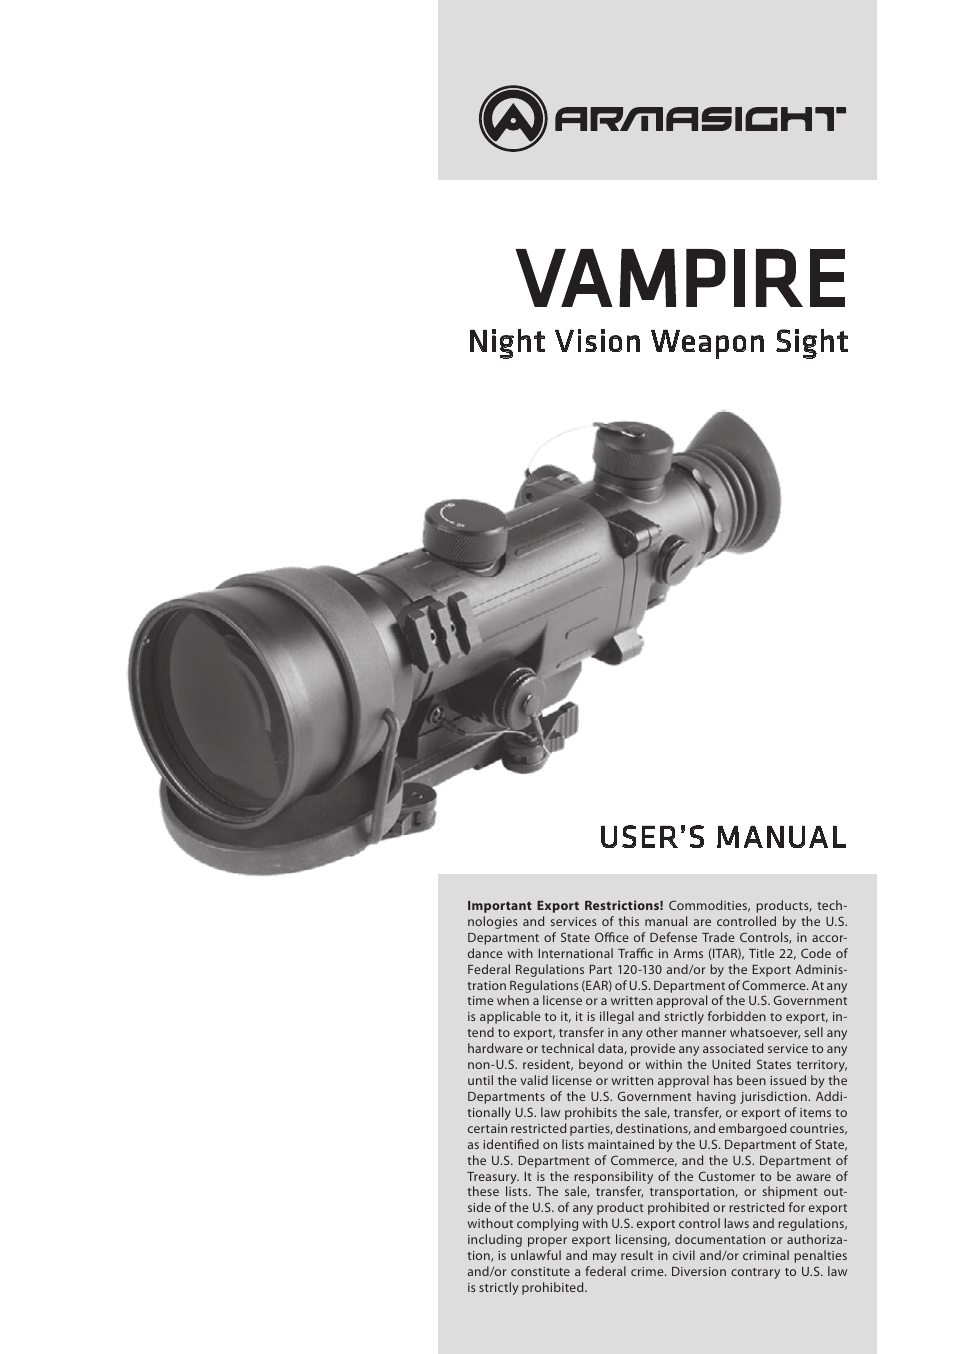 Armasight nmwvampir3ccic1 vampire 3x core iit night vision rifle armasight nmwvampir3ccic1 vampire 3x core iit night vision rifle scope user manual 12 pages asfbconference2016 Images